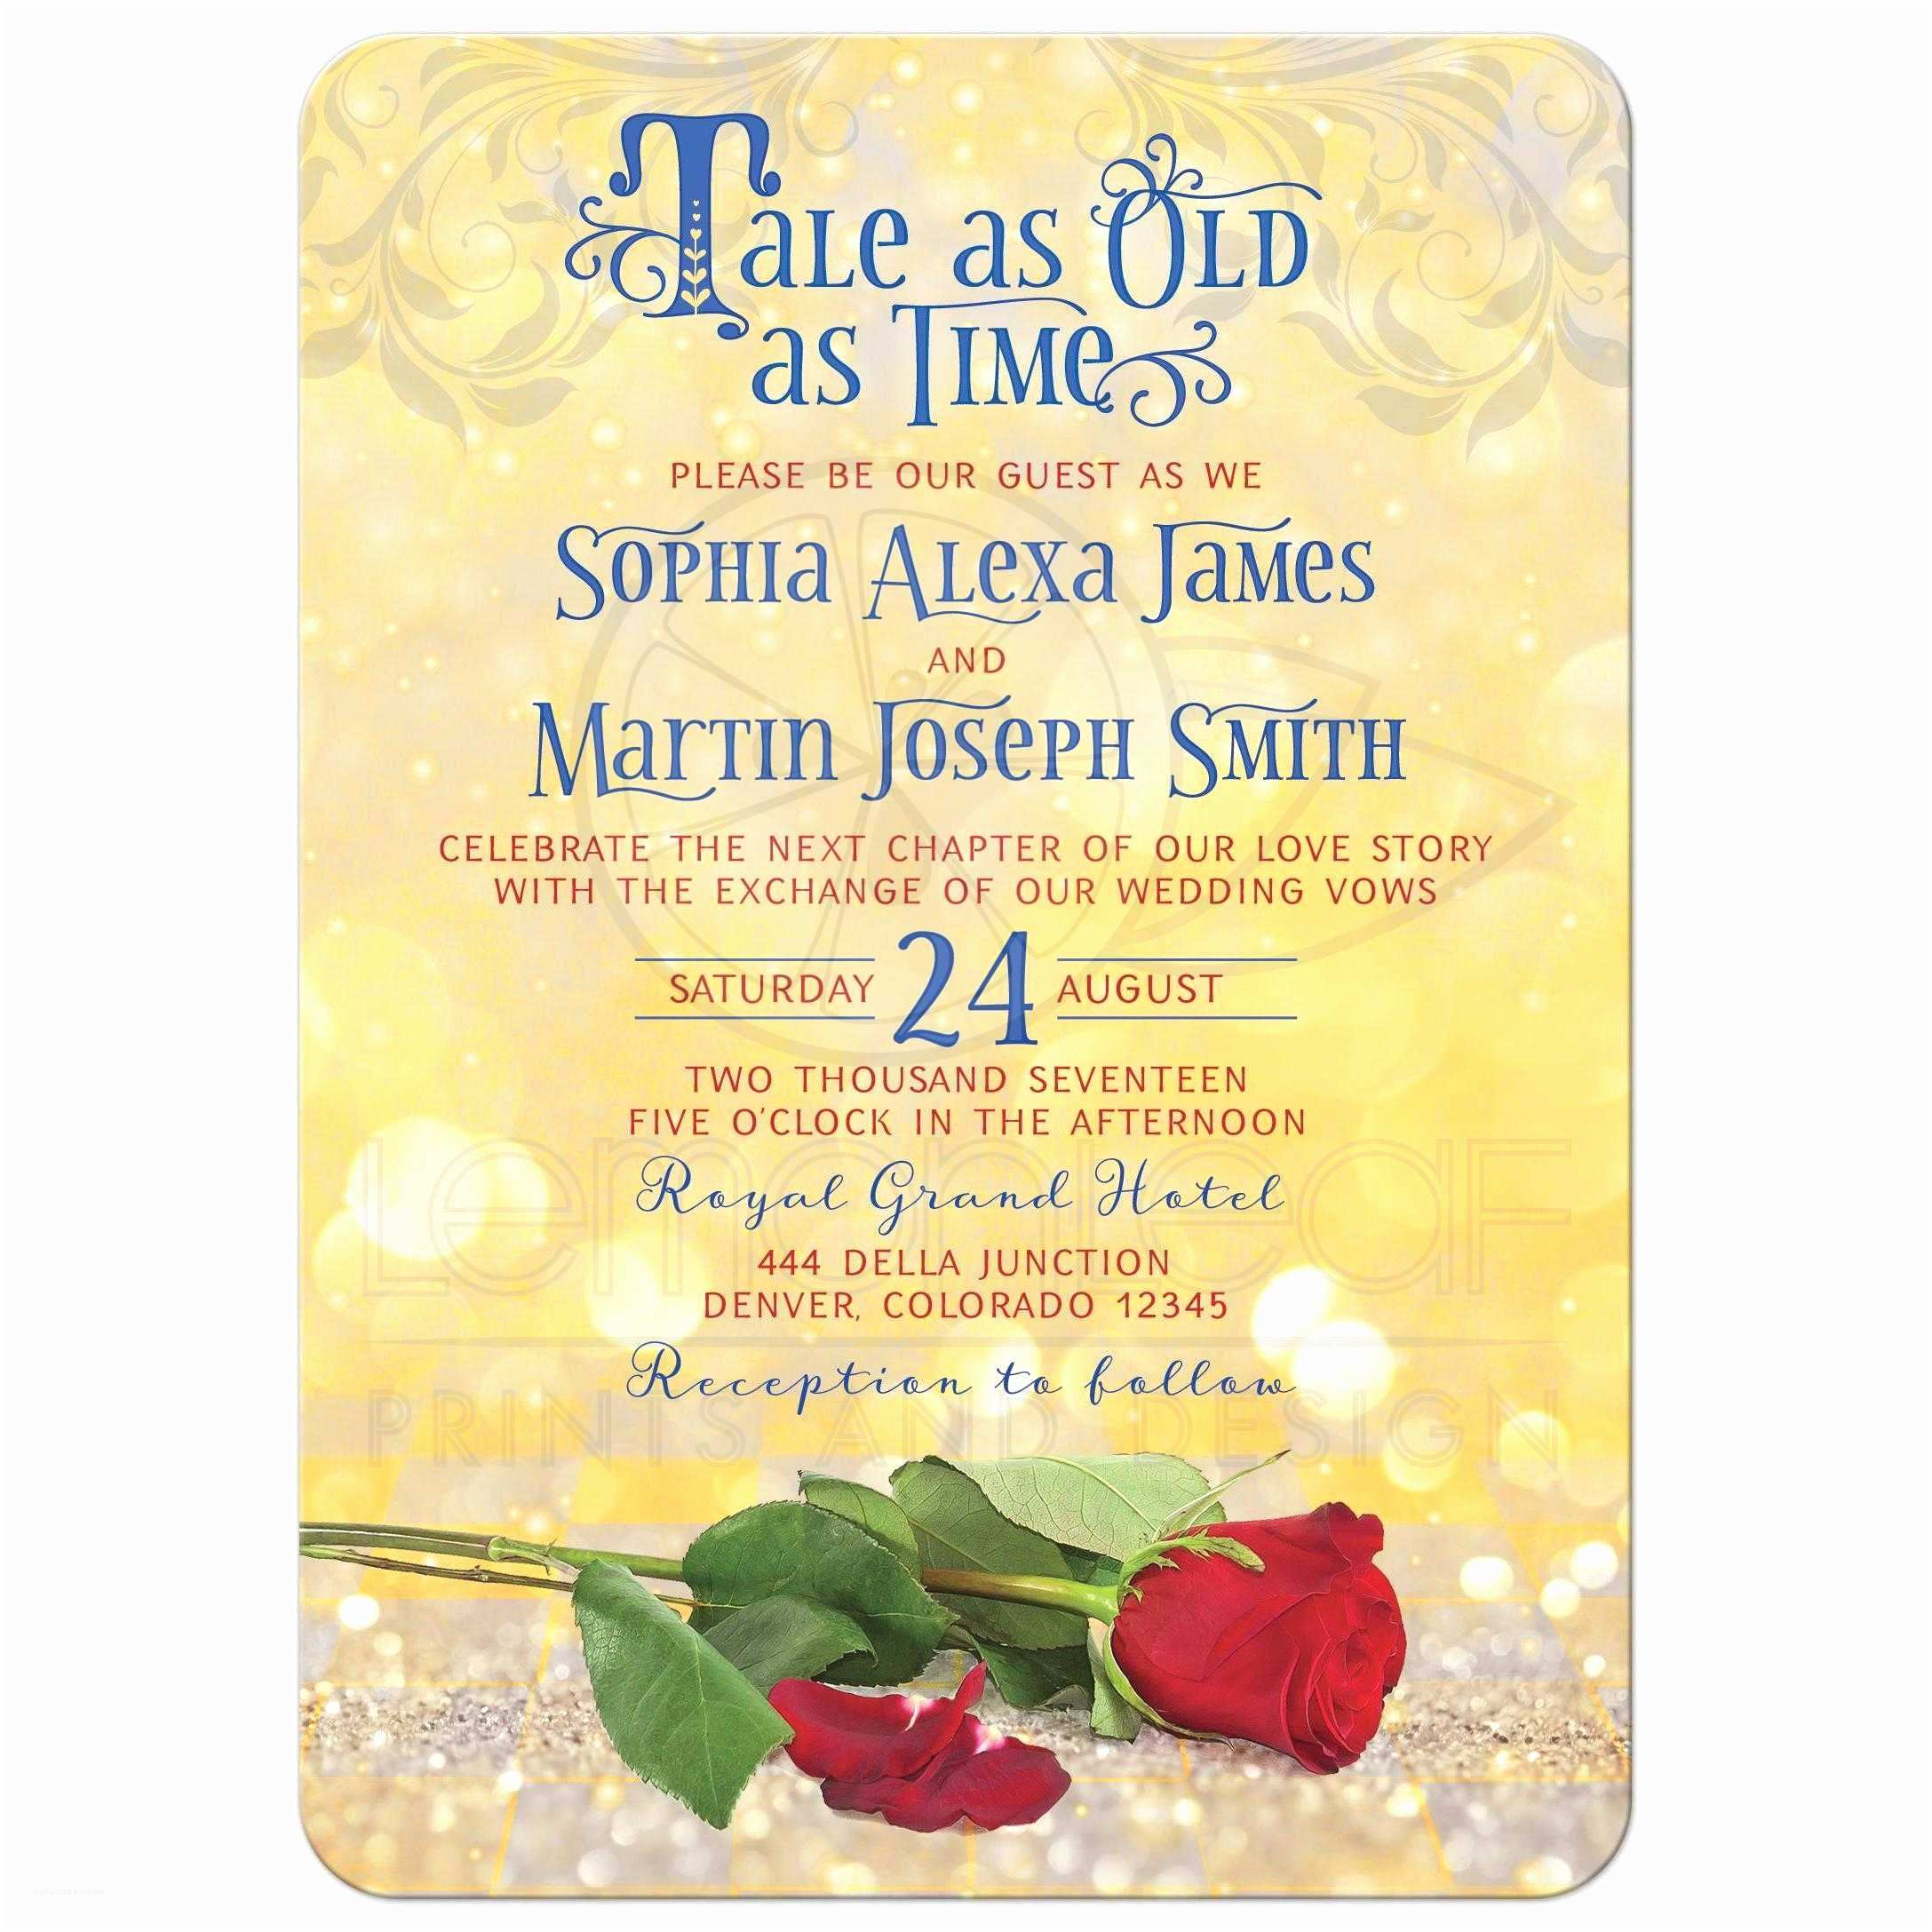 Be Our Guest Wedding Invitations Fairytale Tale as Old as Time Wedding Invitation